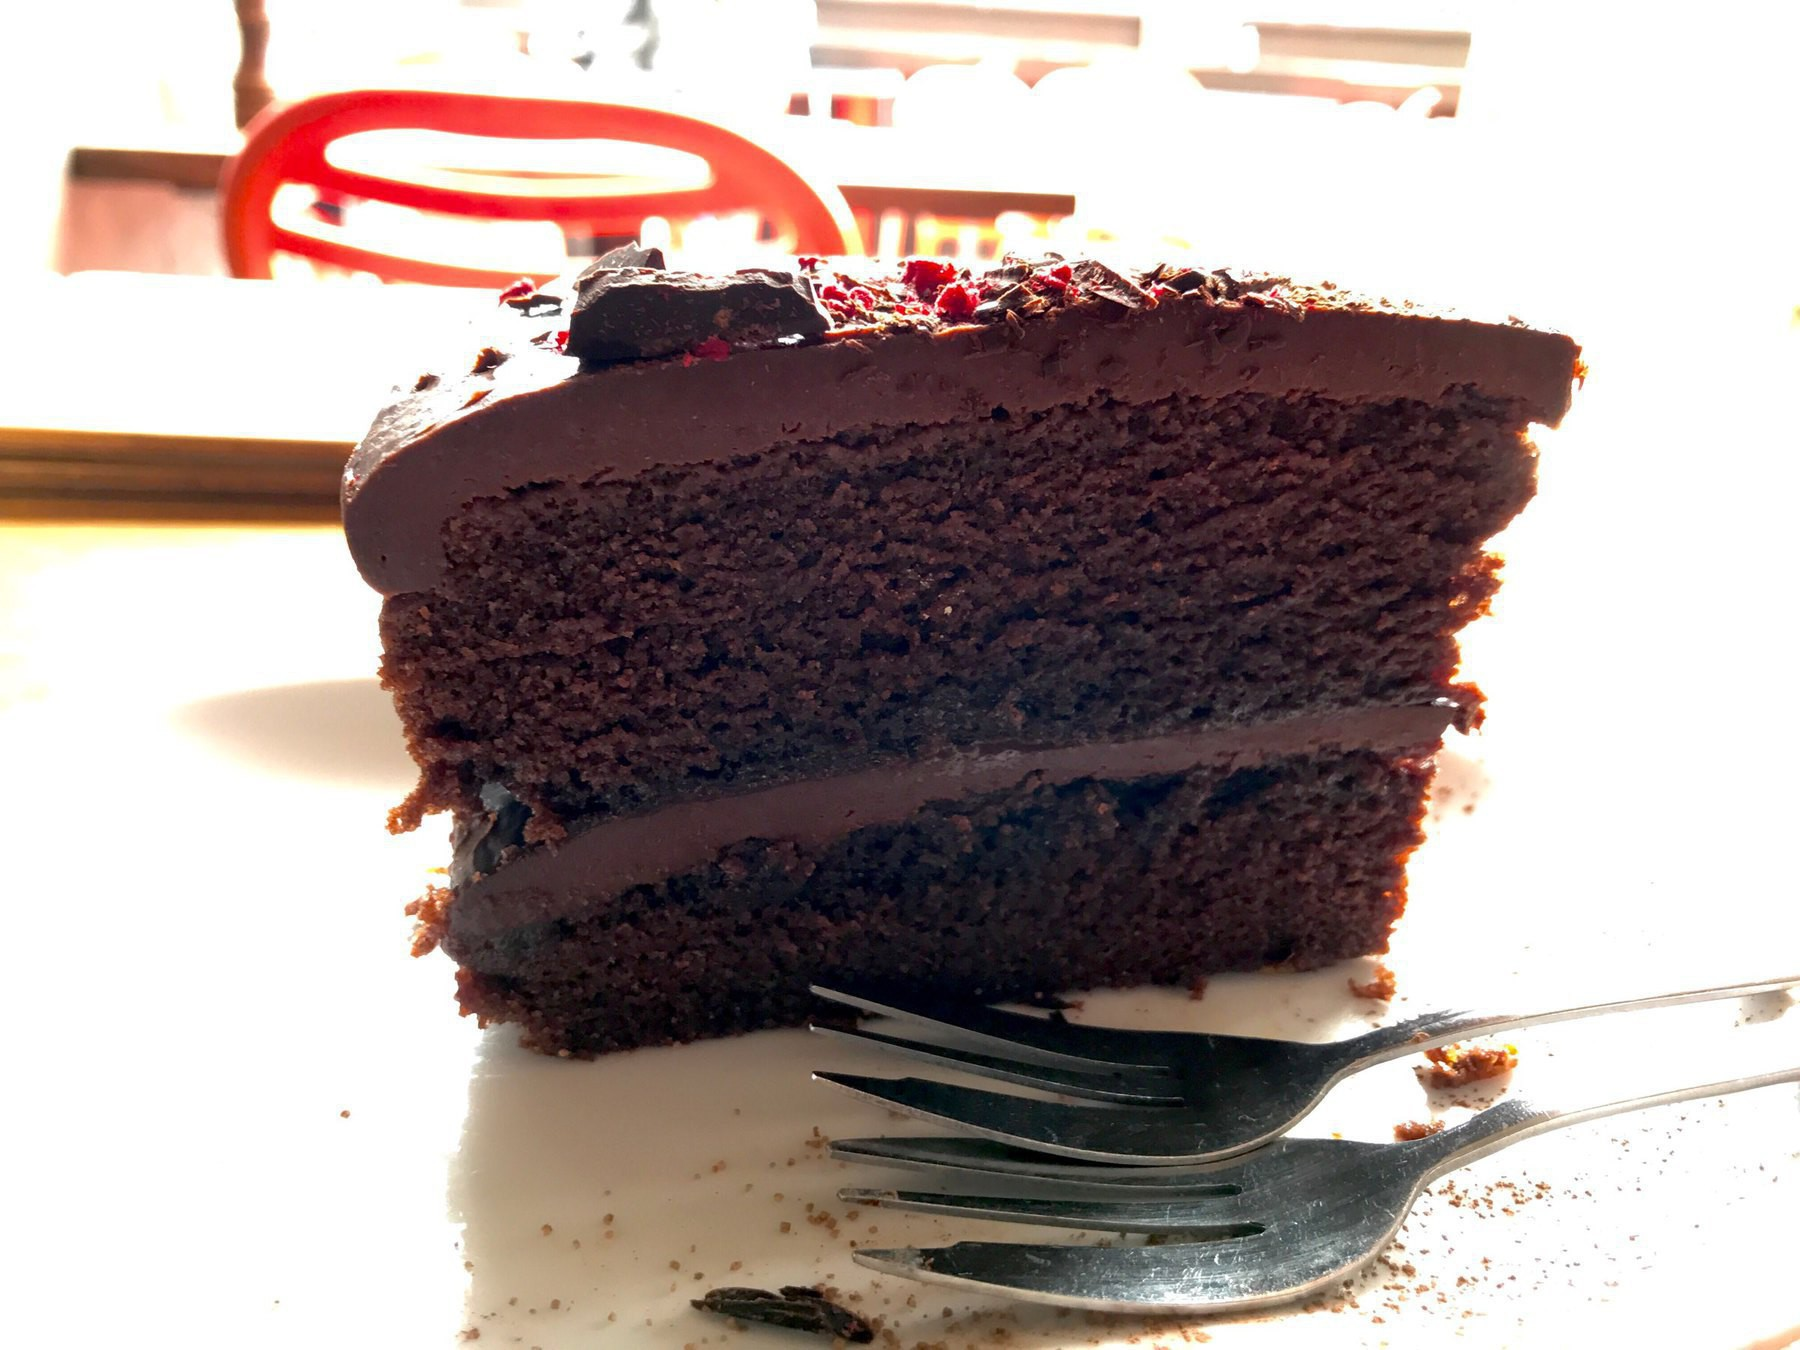 Large piece of chocolate cake.